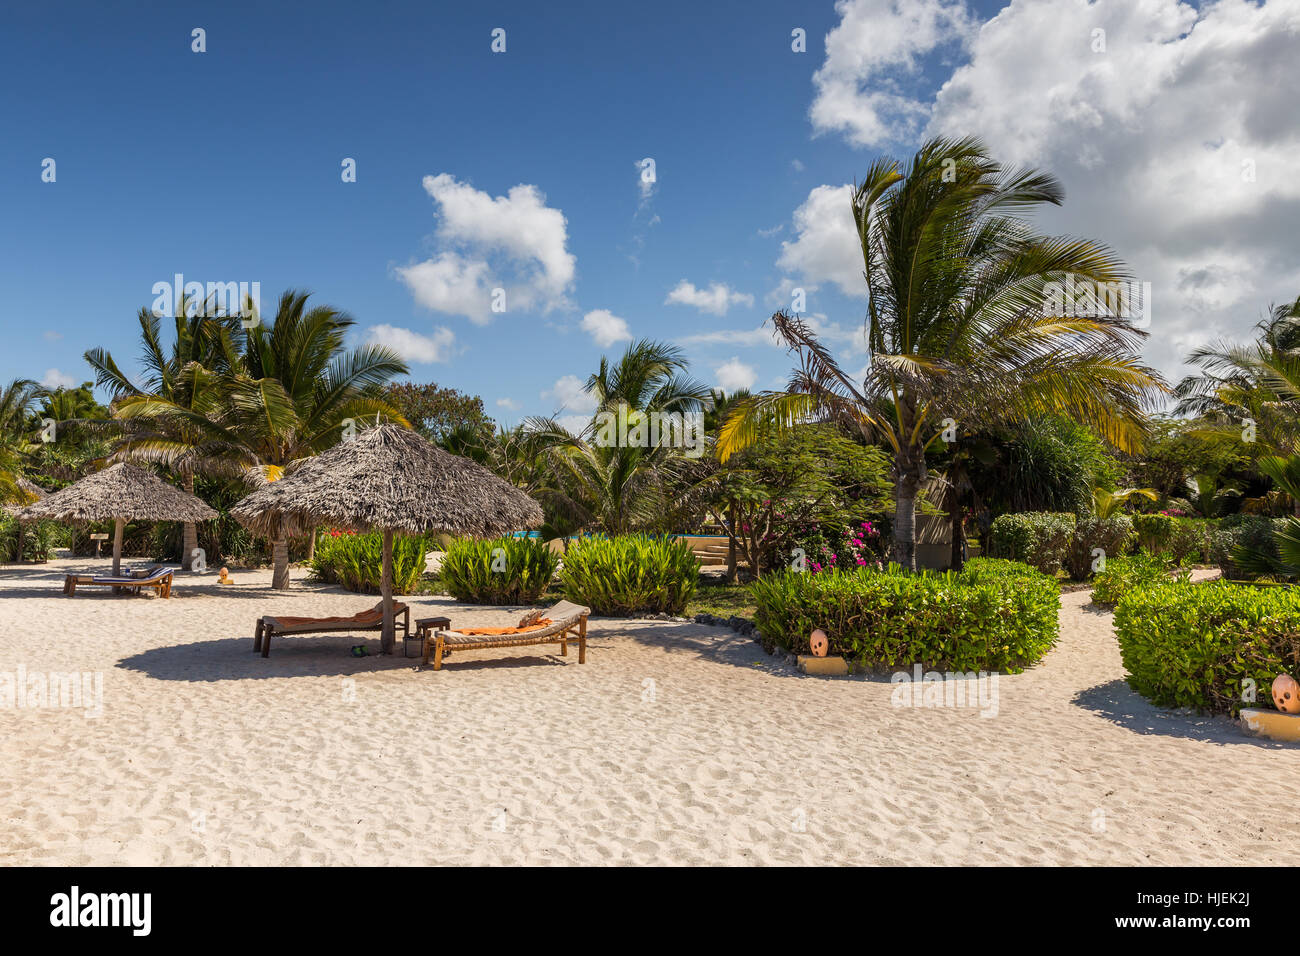 Sandy beach with sunshades with straw roof and sunbeds blue sky, palms in the background, hotel resort, sunny day - Stock Image